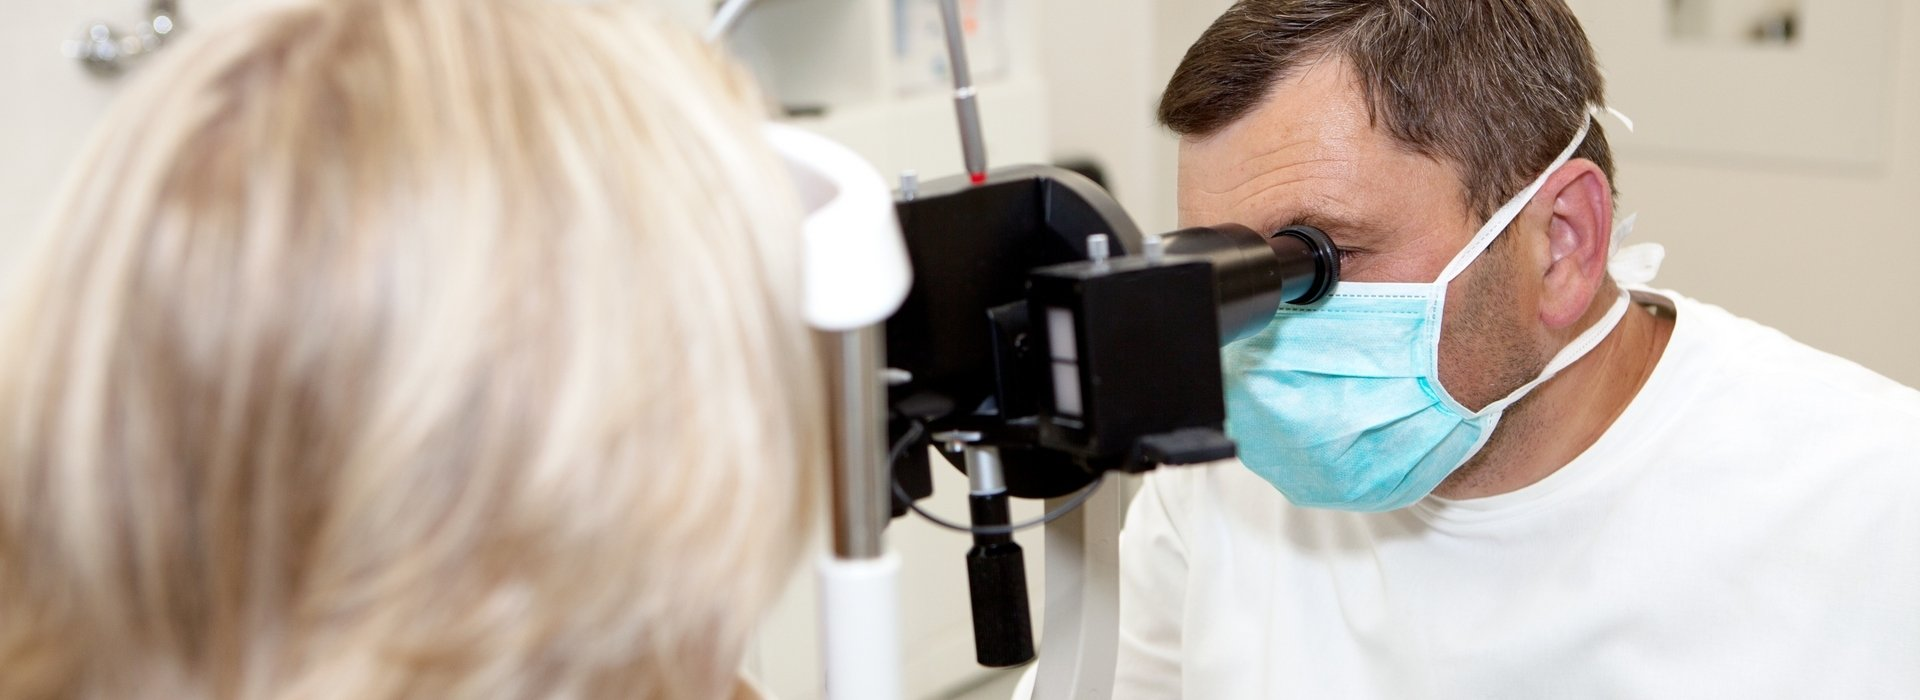 Cataract surgery in Budapest  Budapest eye clinic guide